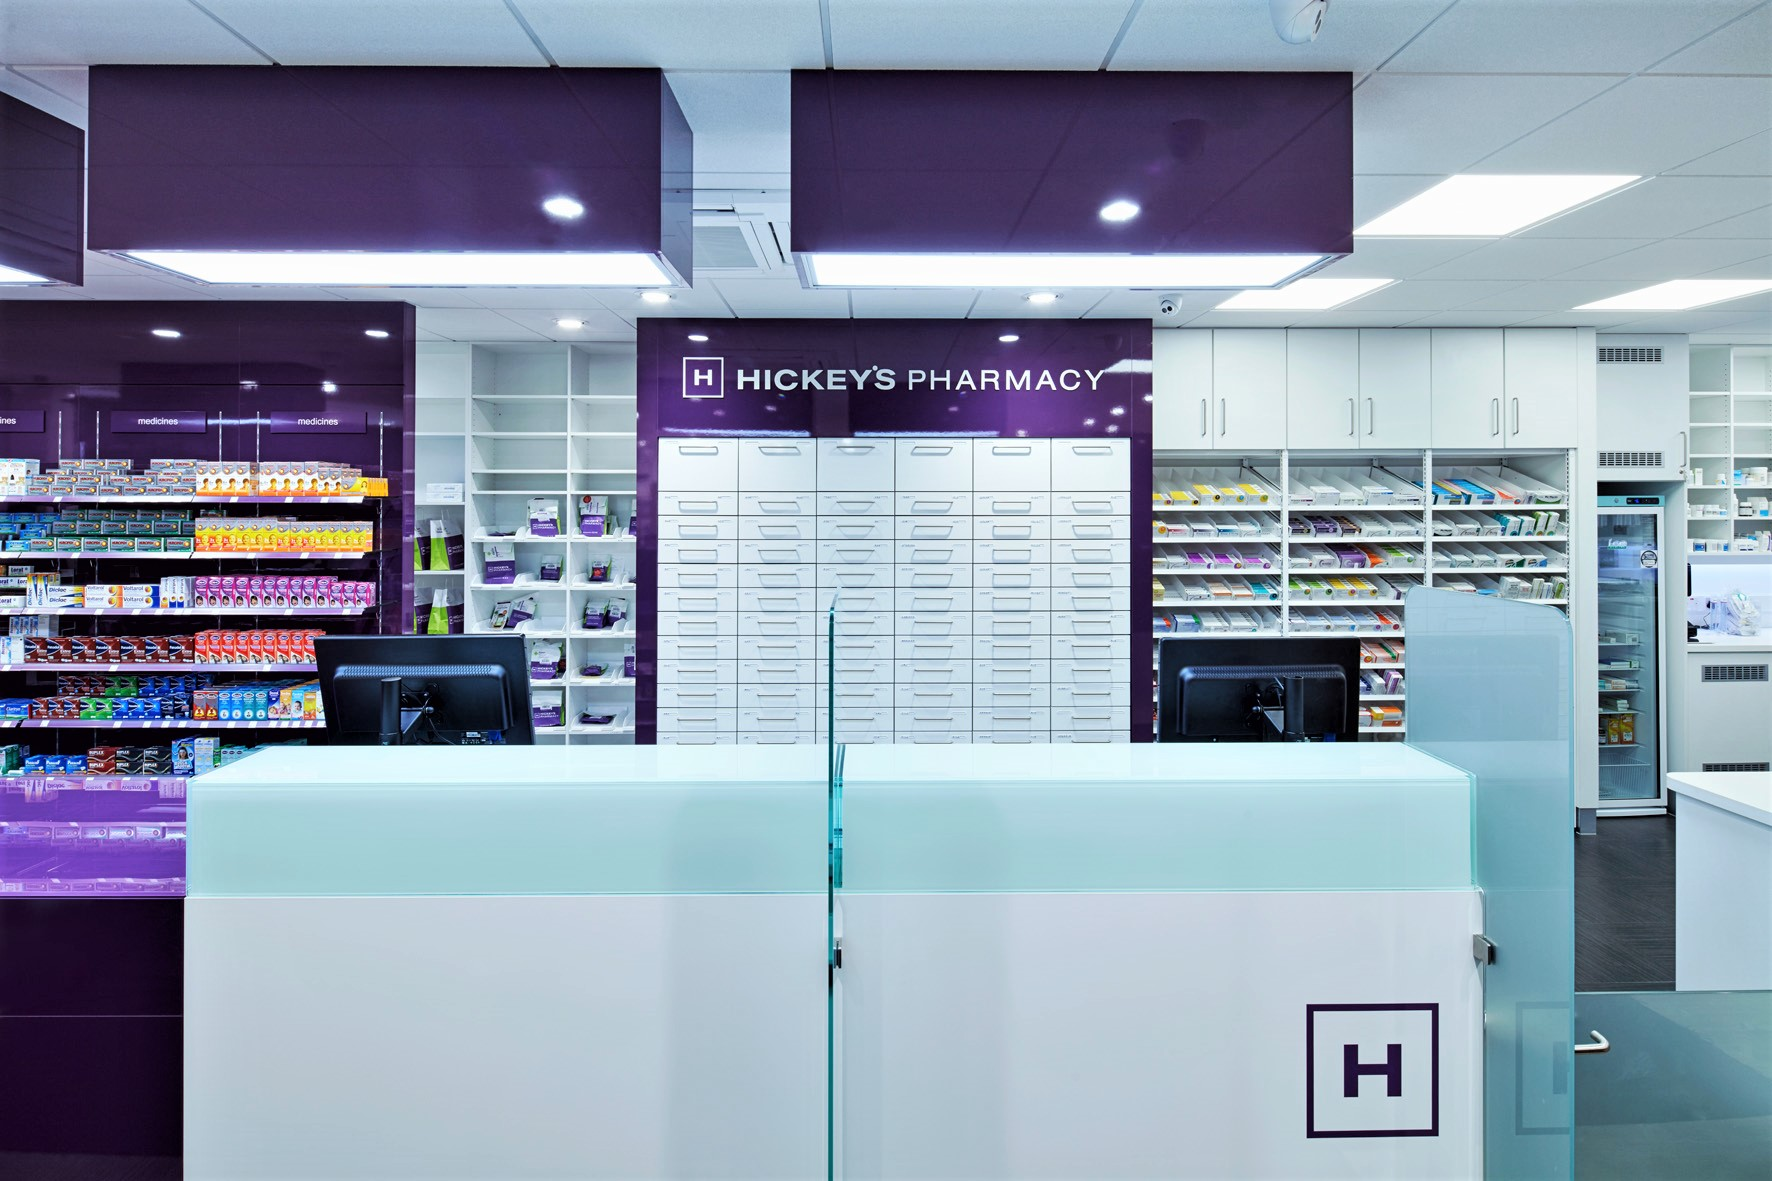 whelan pharmacy Pharmacy products dispensing products made simple in an increasingly complex and competitive business, successful pharmacies are embracing the idea that efficiency makes things simpler - and simpler is better.